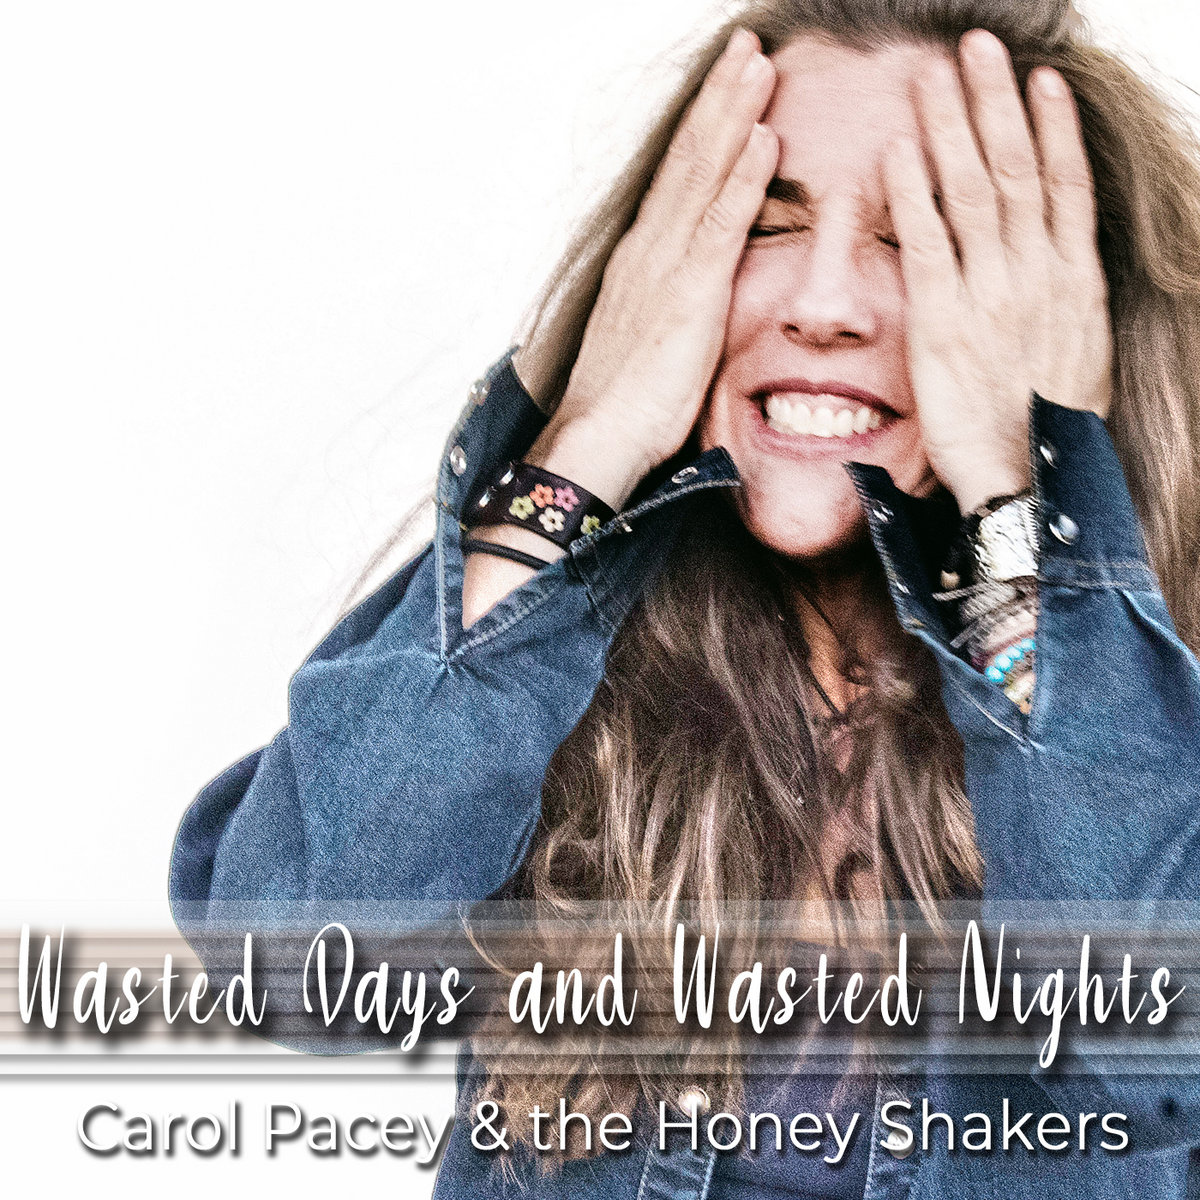 Wasted Days and Wasted Nights by Carol Pacey & the Honey Shakers